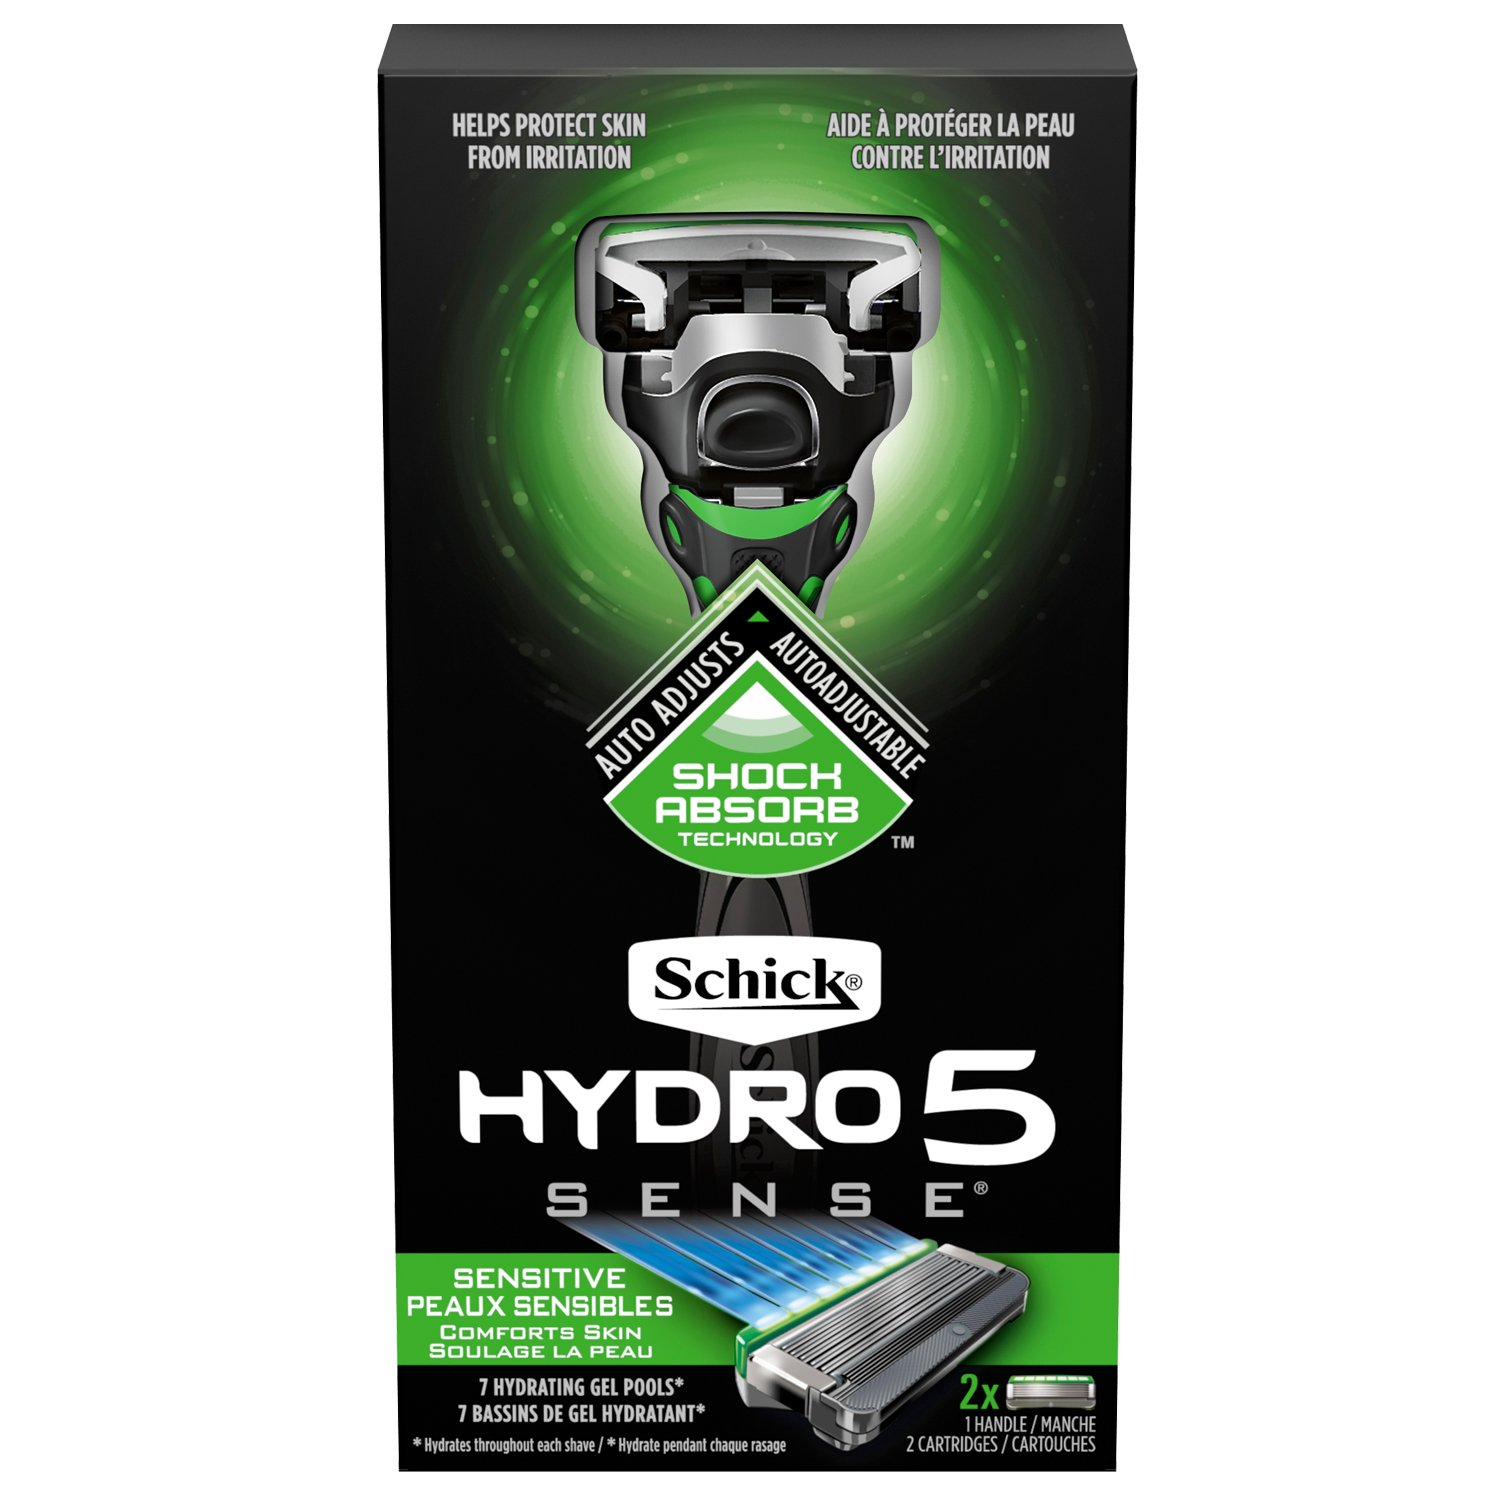 Schick Hydro Sense Sensitive Razors for Men with Shock Absorbent Technology, 1 Razor Handle and 2 Razor Blades Refills